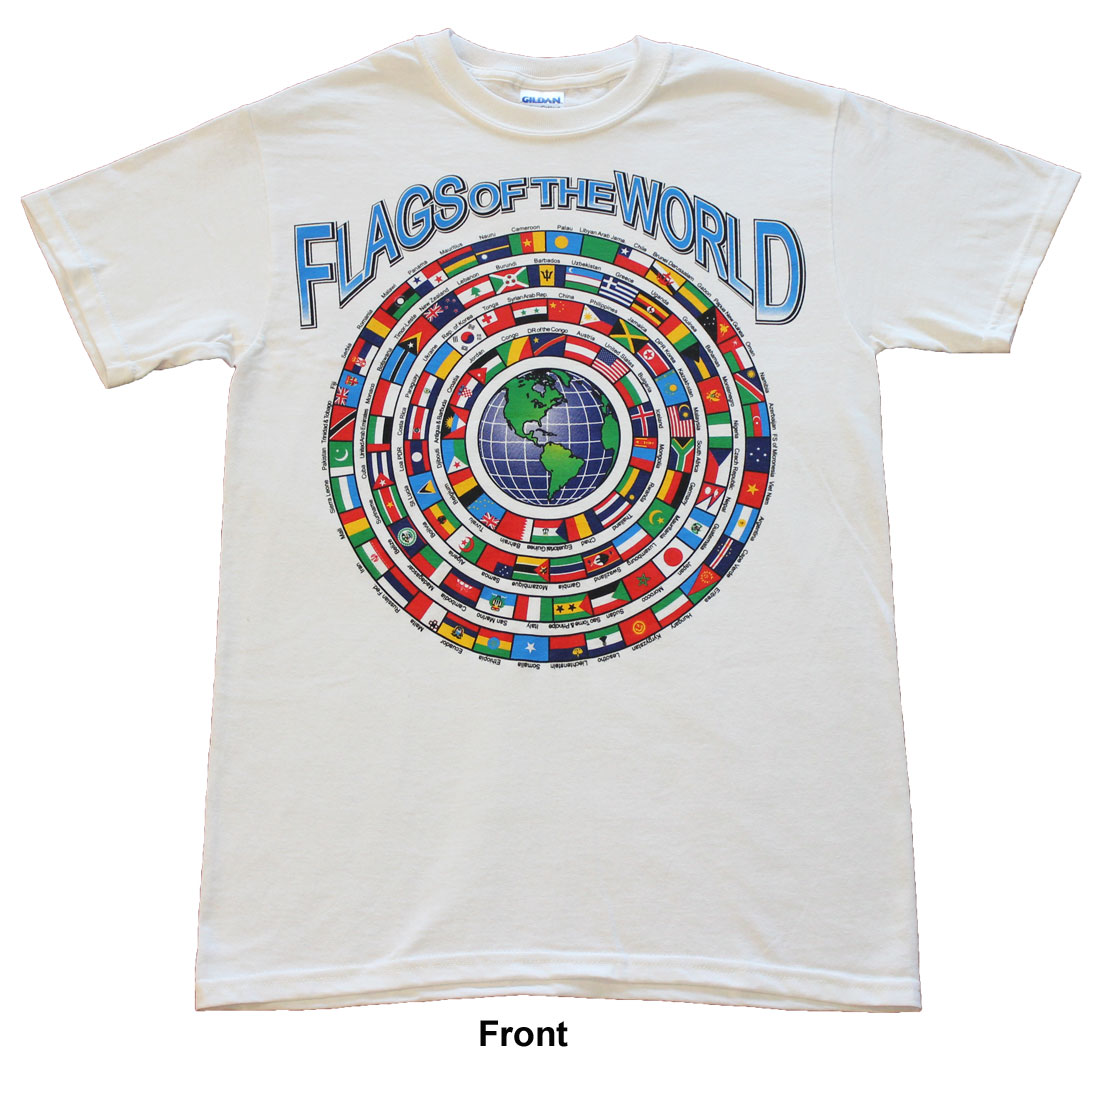 Buy Flags Of The World T Shirt Flagline